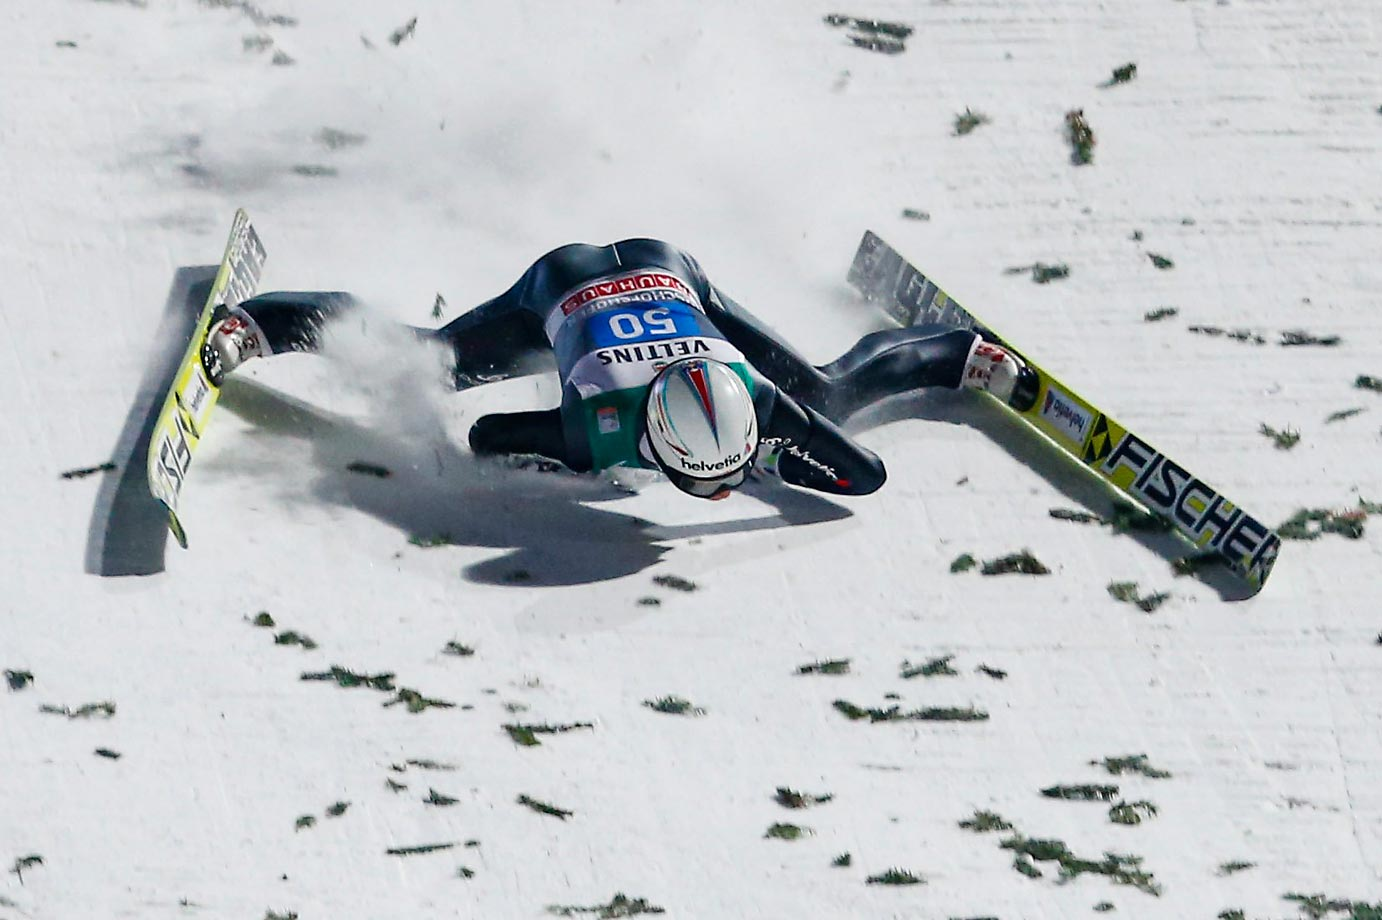 Simon Ammann takes a spill during the FIS Ski Jumping World Cup in Austria.